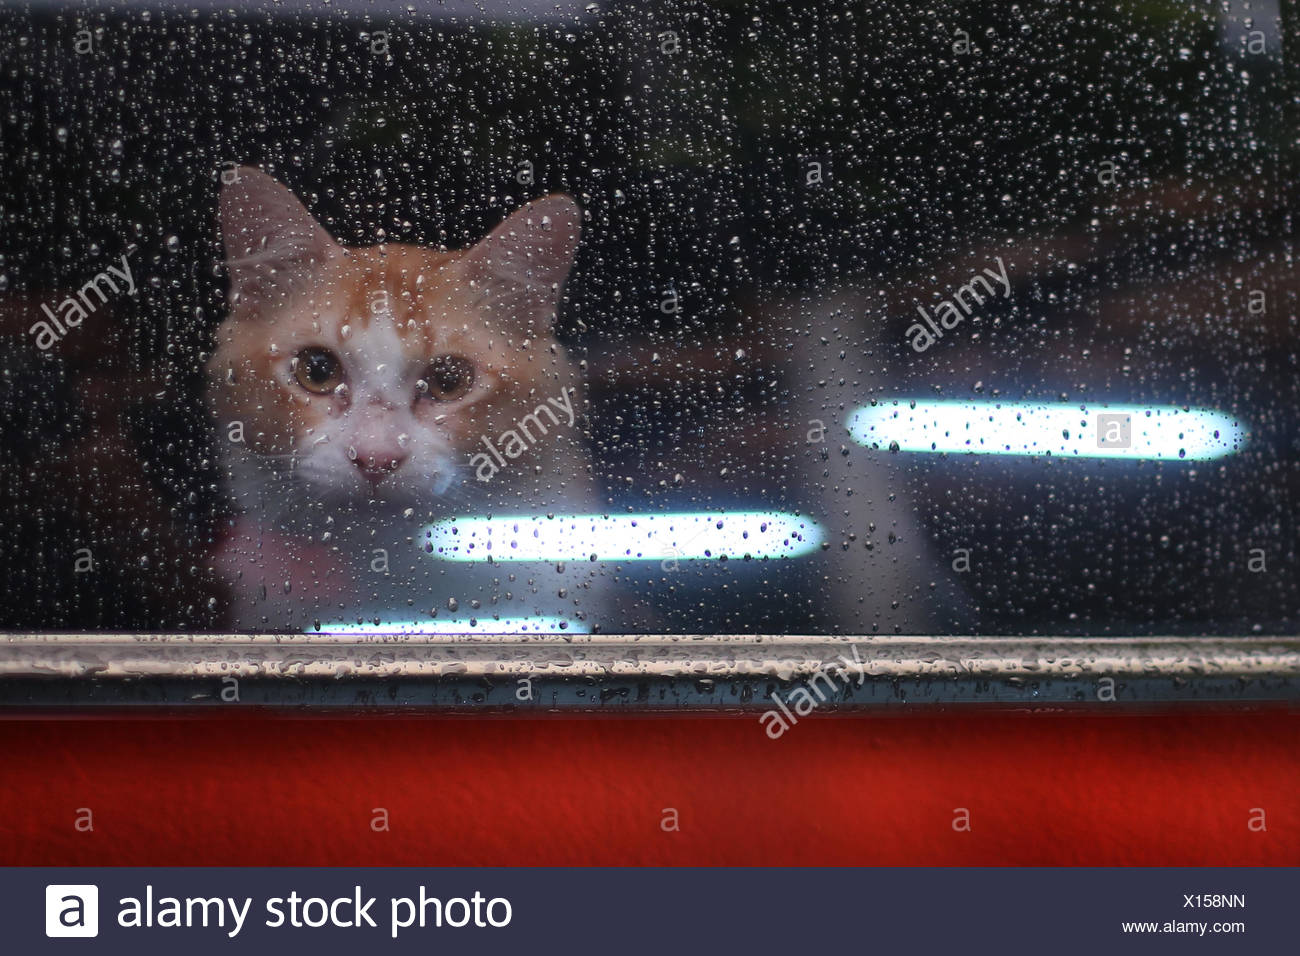 Cat looking through window - Stock Image